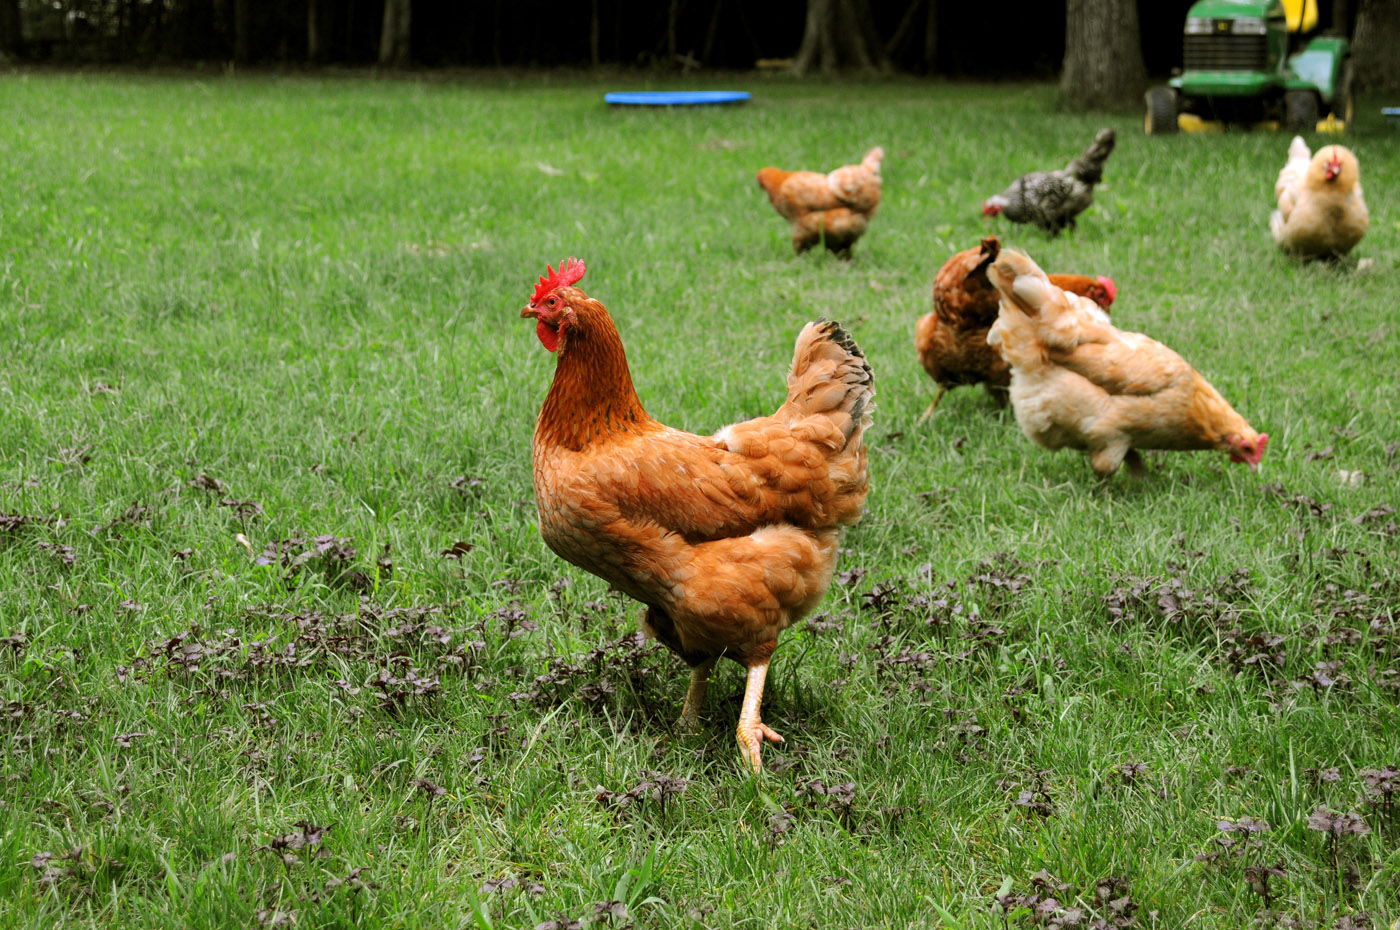 backyard chickens provide fun way to enjoy fresh eggs mississippi state university extension